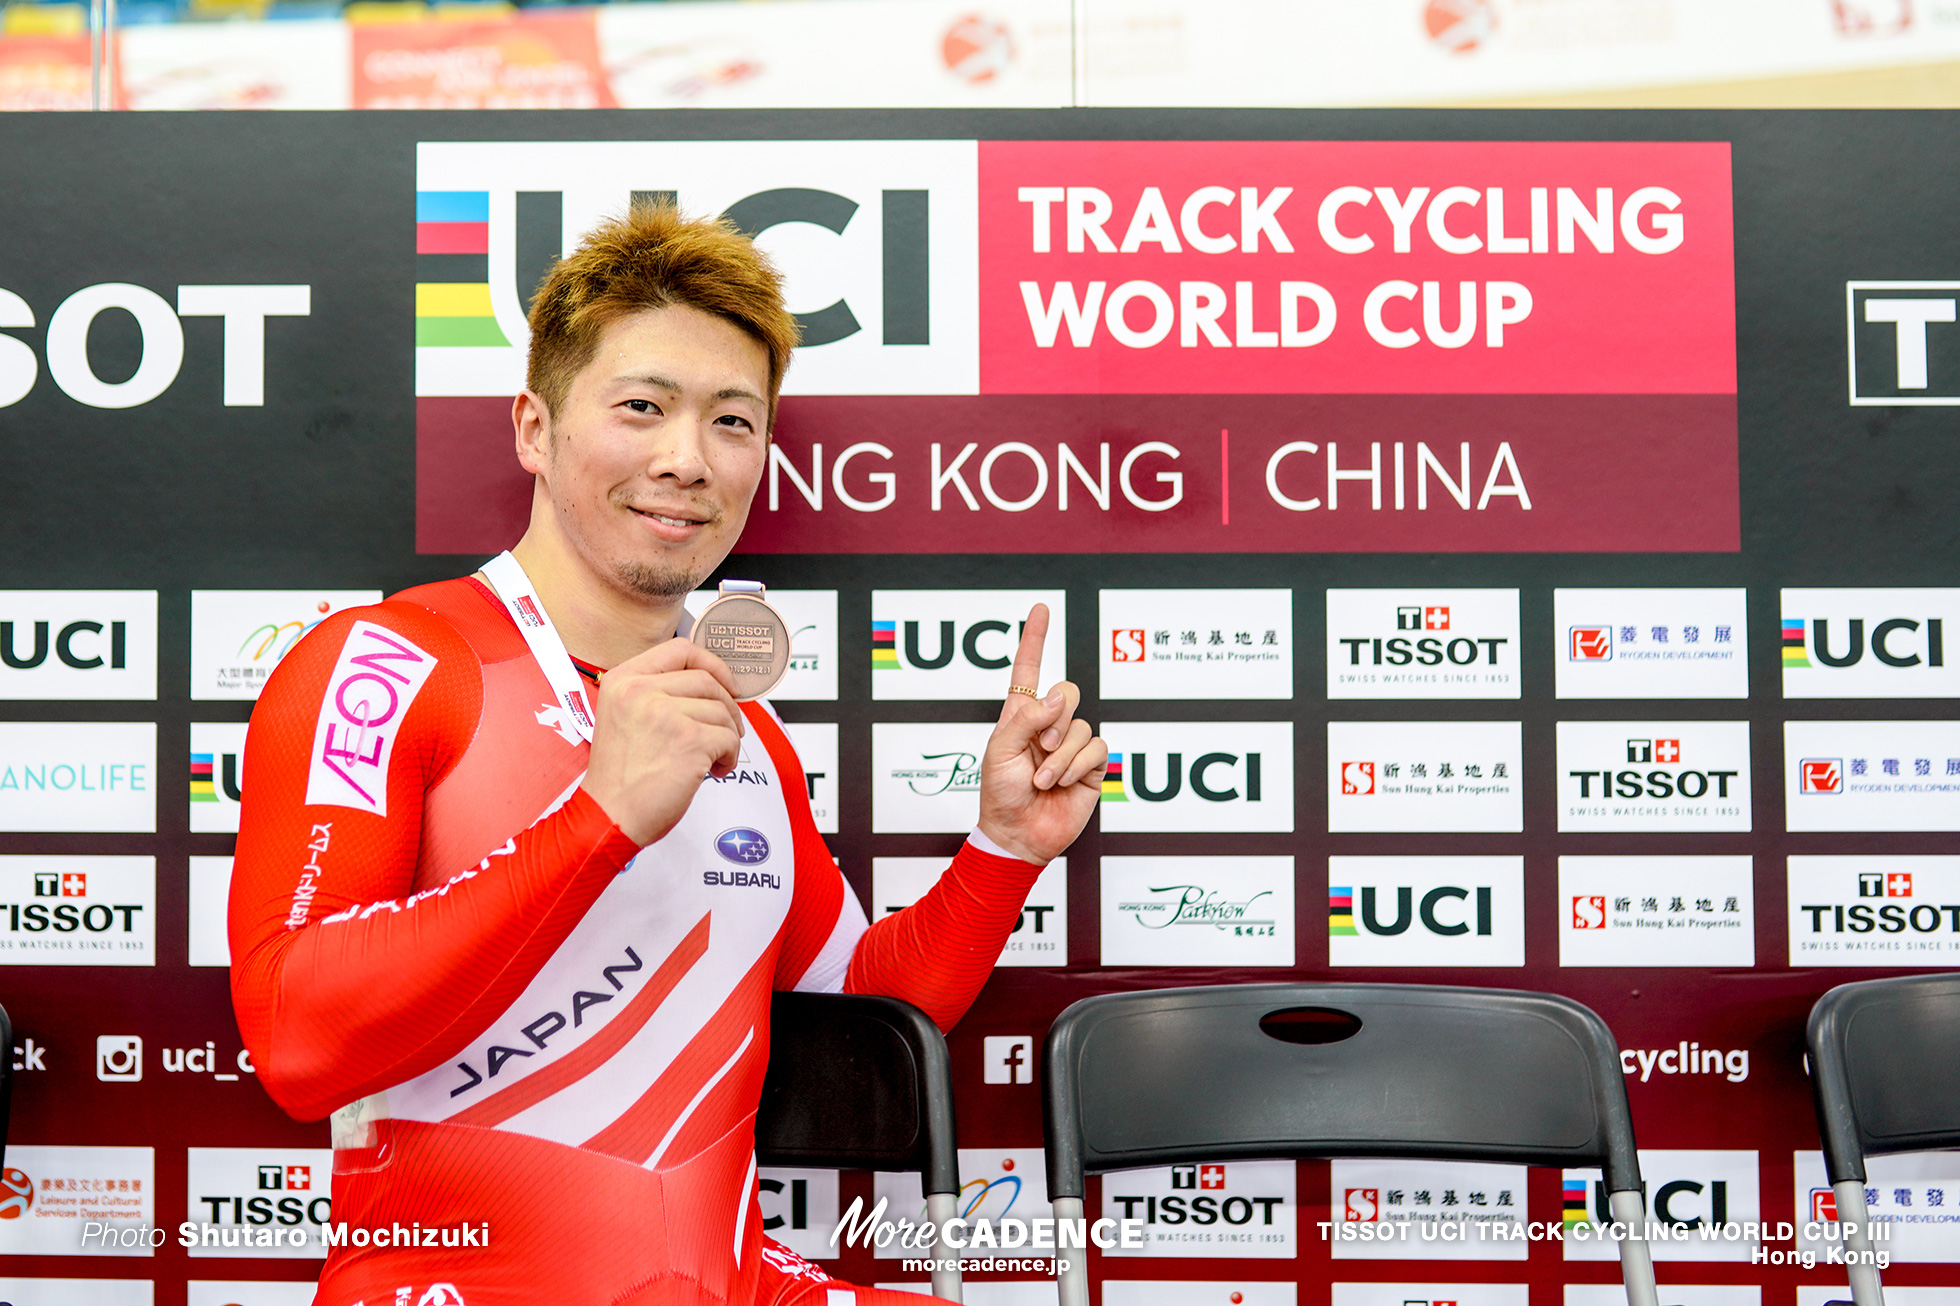 深谷知広, TISSOT UCI TRACK CYCLING WORLD CUP III, Hong Kong